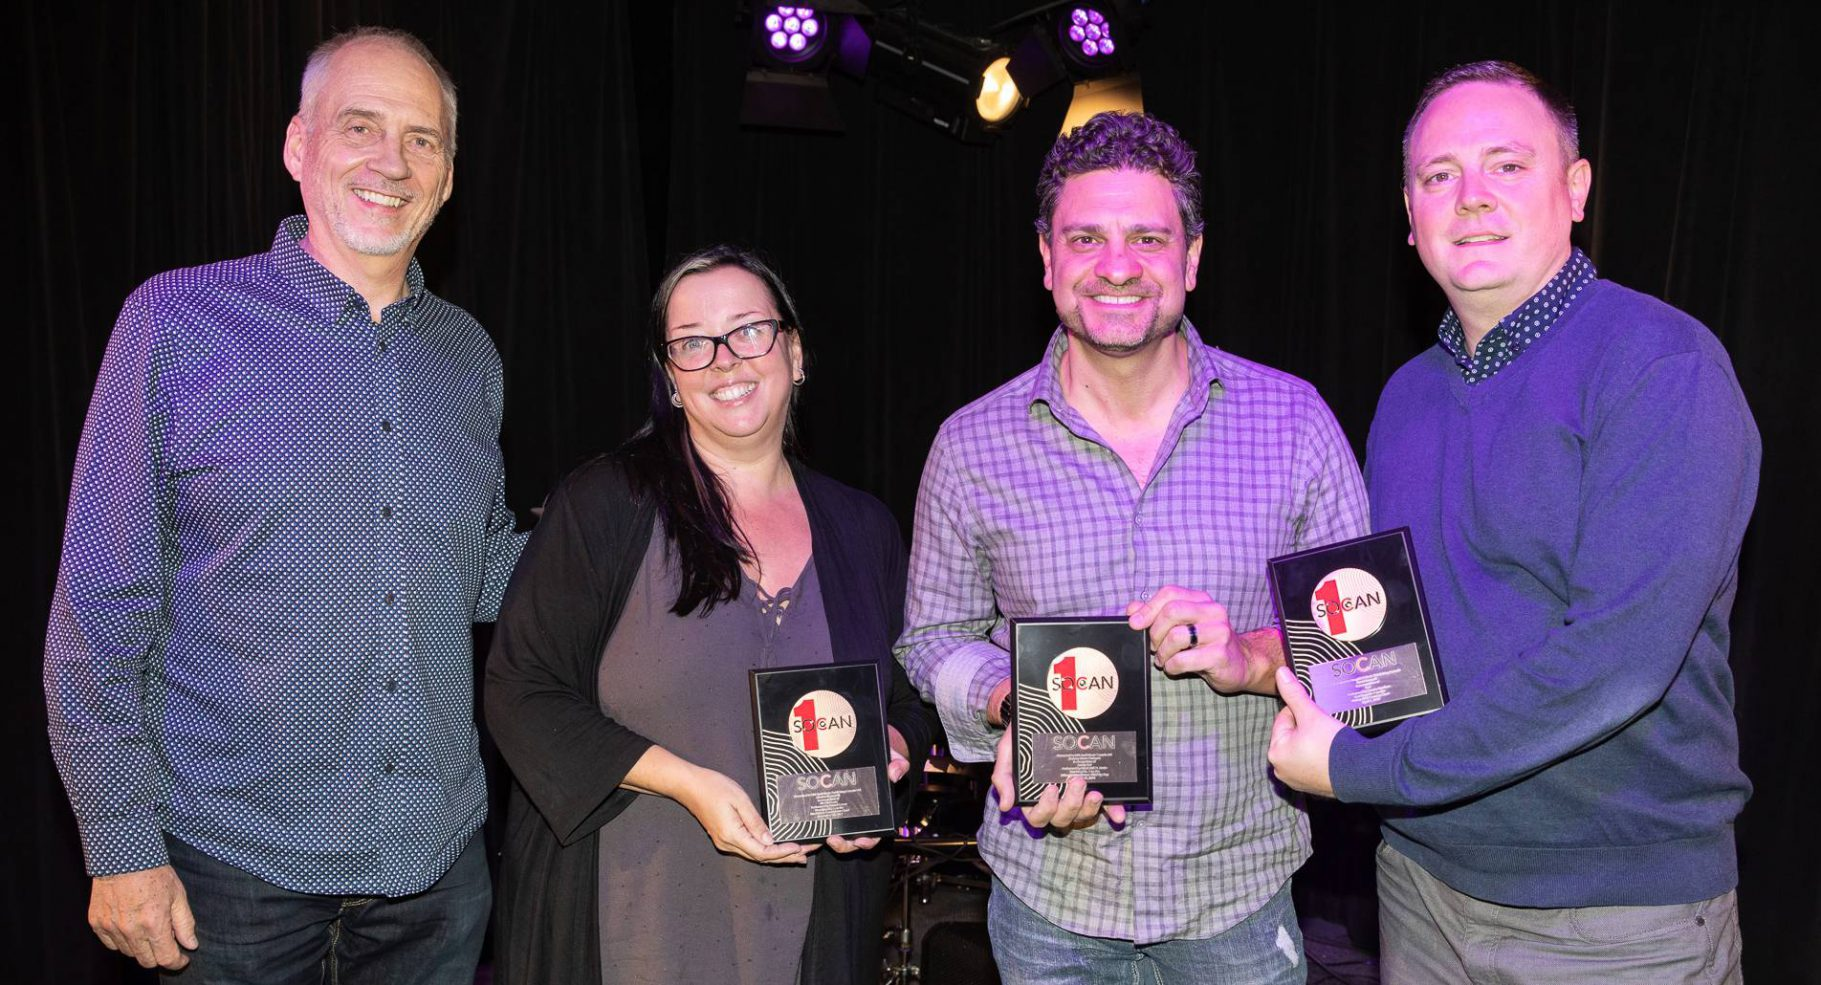 SOCAN, No. 1 Songs, awards, publishers, Sony/ATV, EMI, Janet Baker, David Quilico